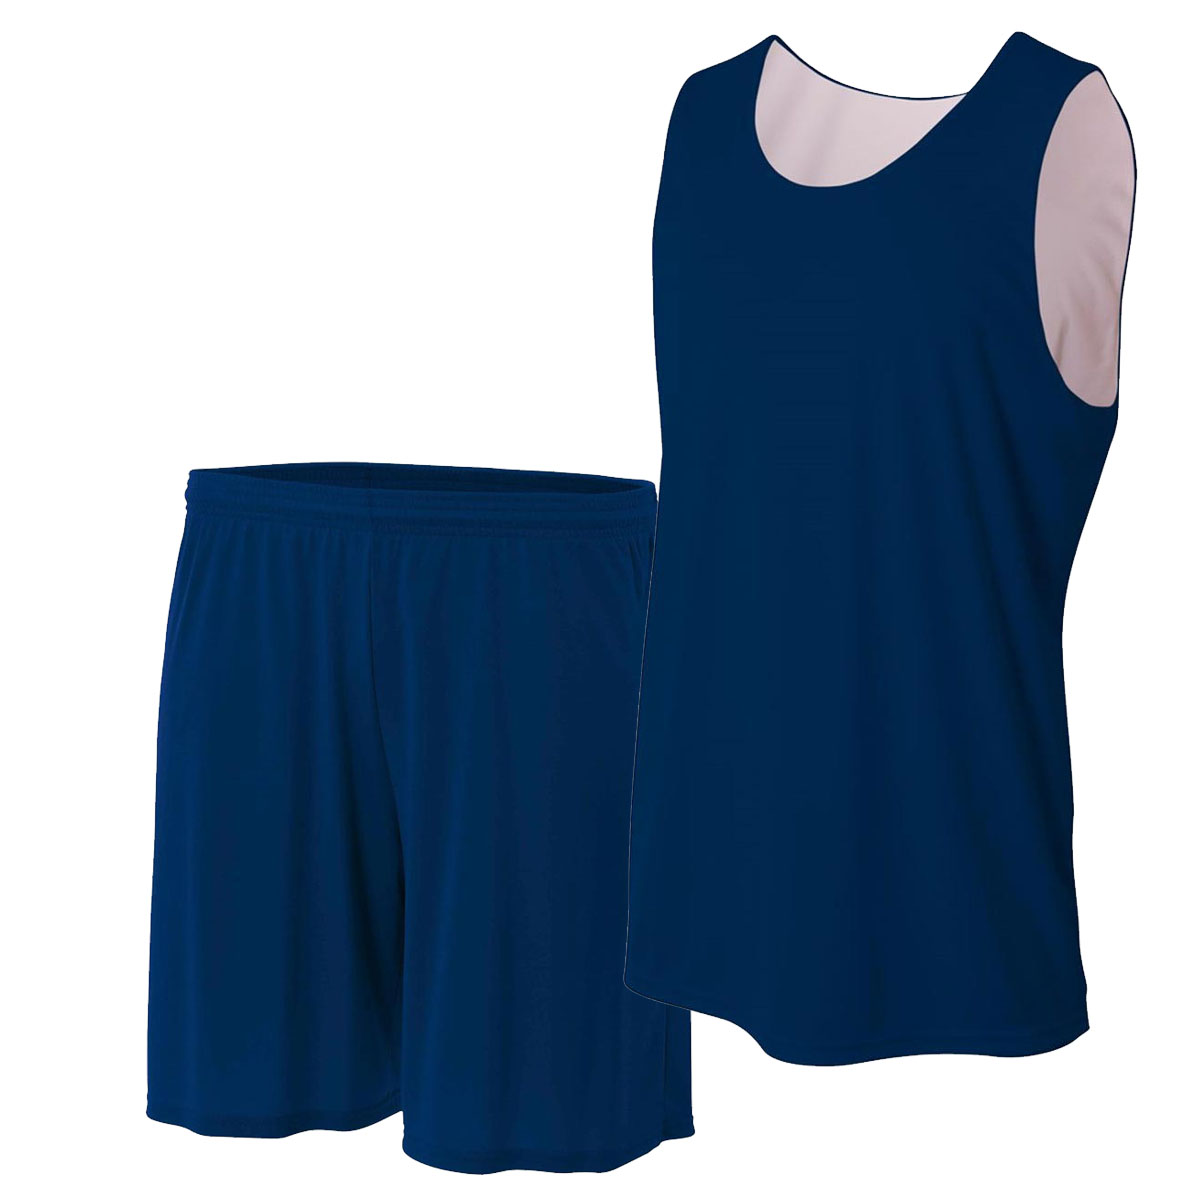 Reversible Basketball Uniforms Manufacturers in Solapur